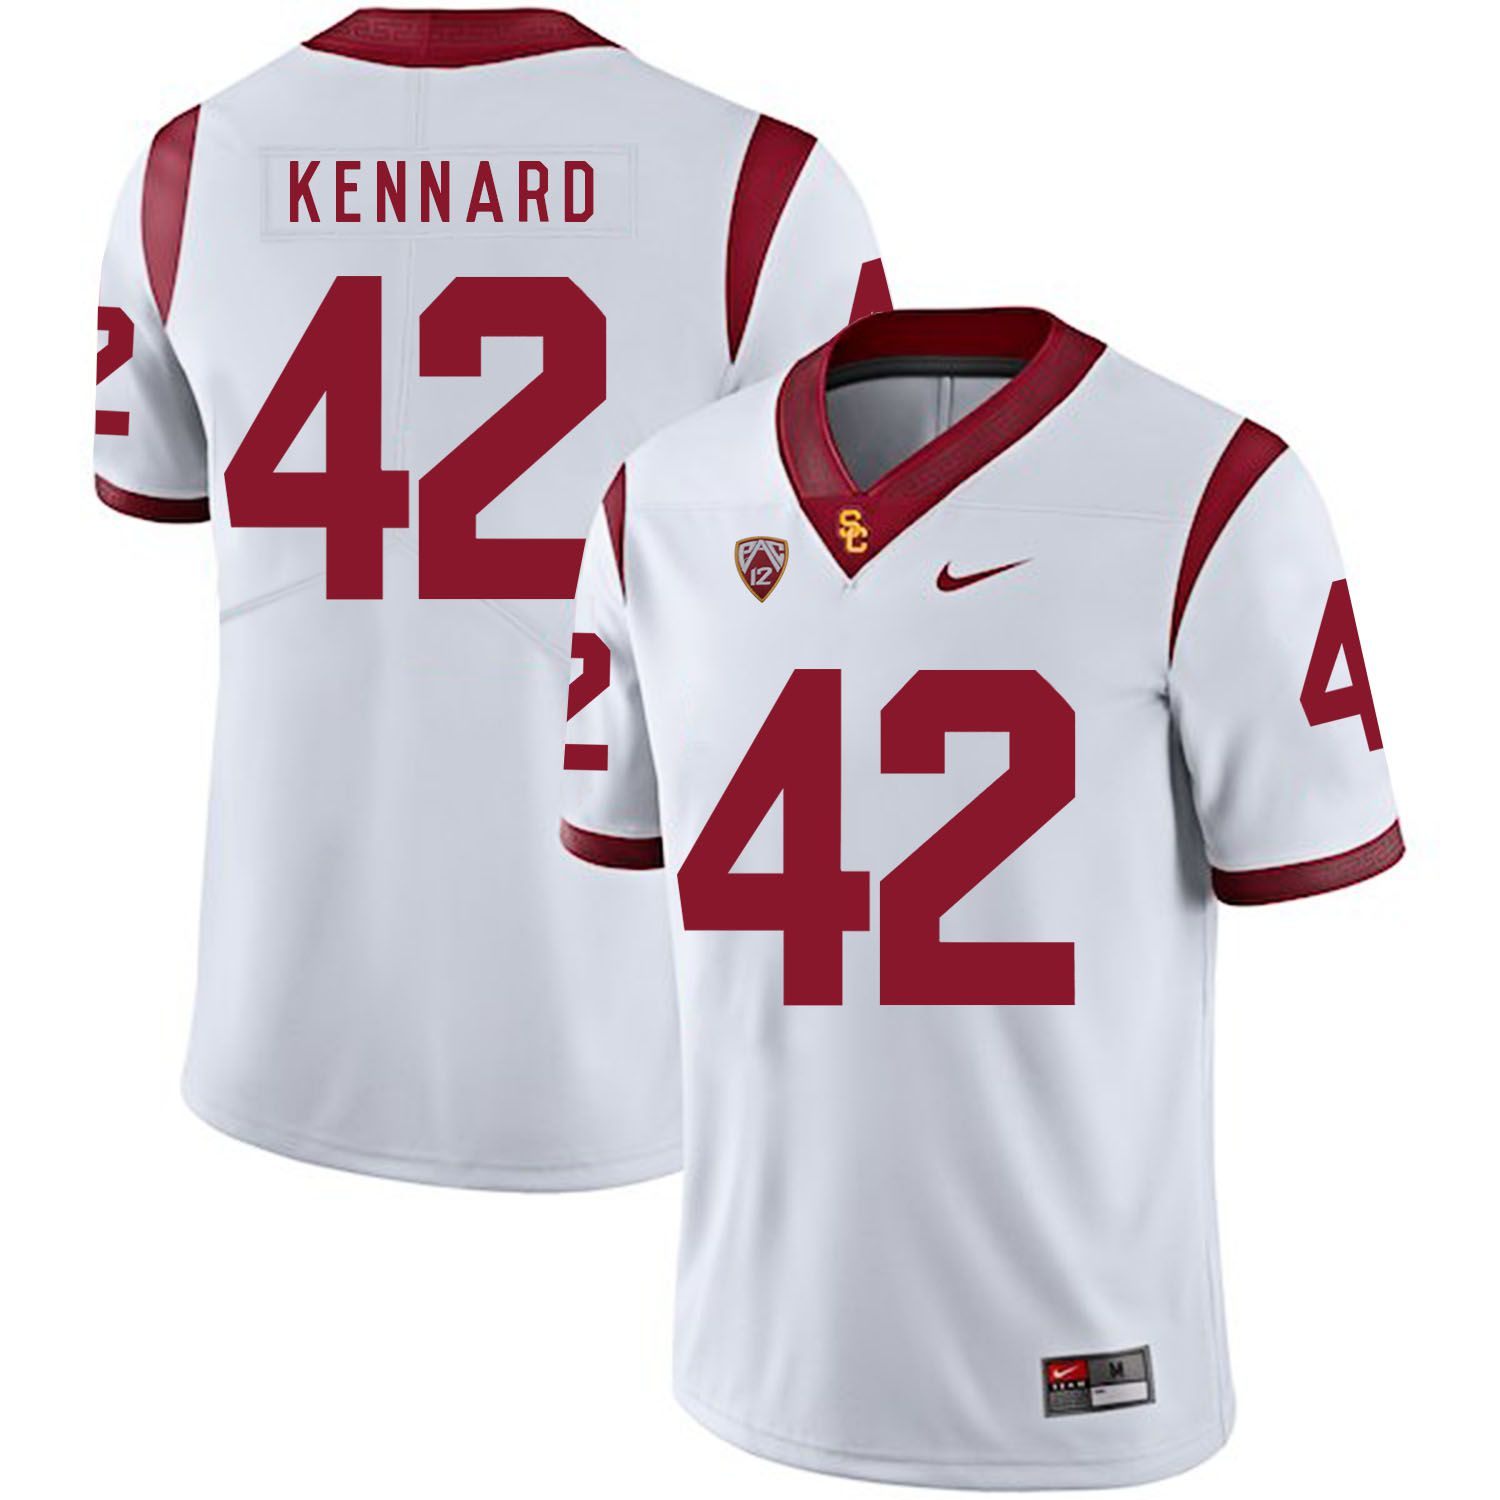 Men USC Trojans 42 Kennard White Customized NCAA Jerseys